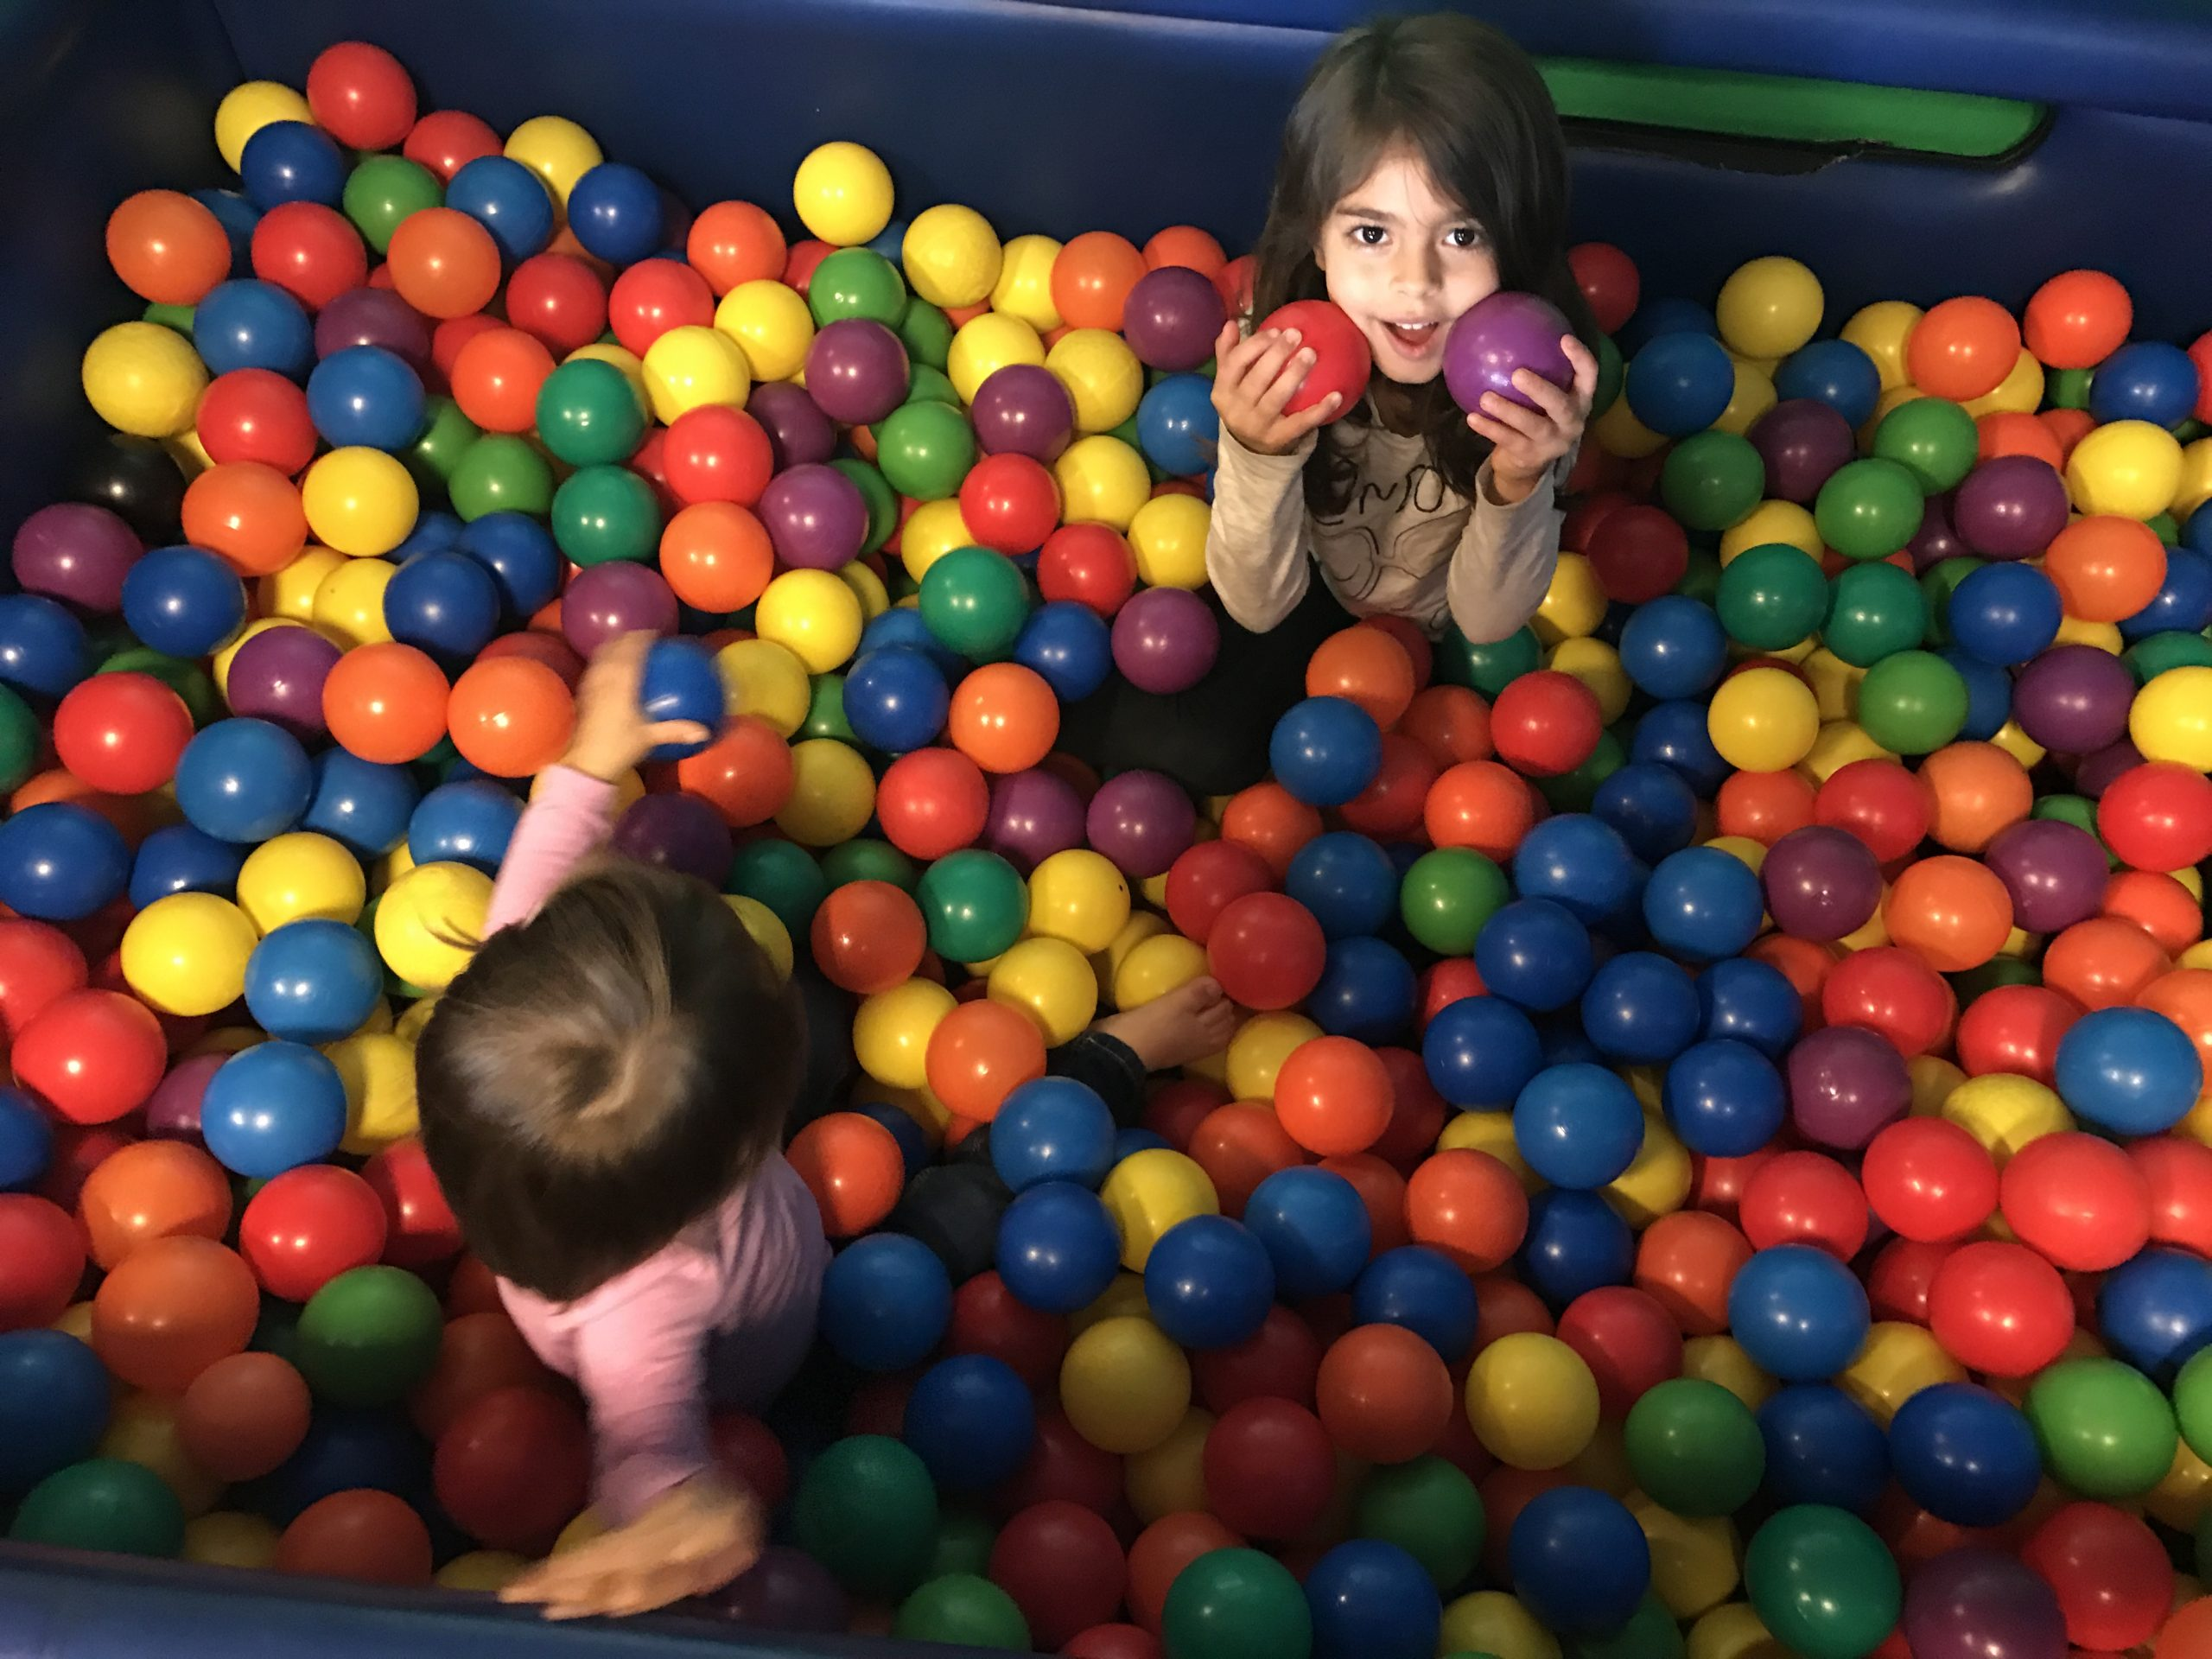 the girls in the ball pit